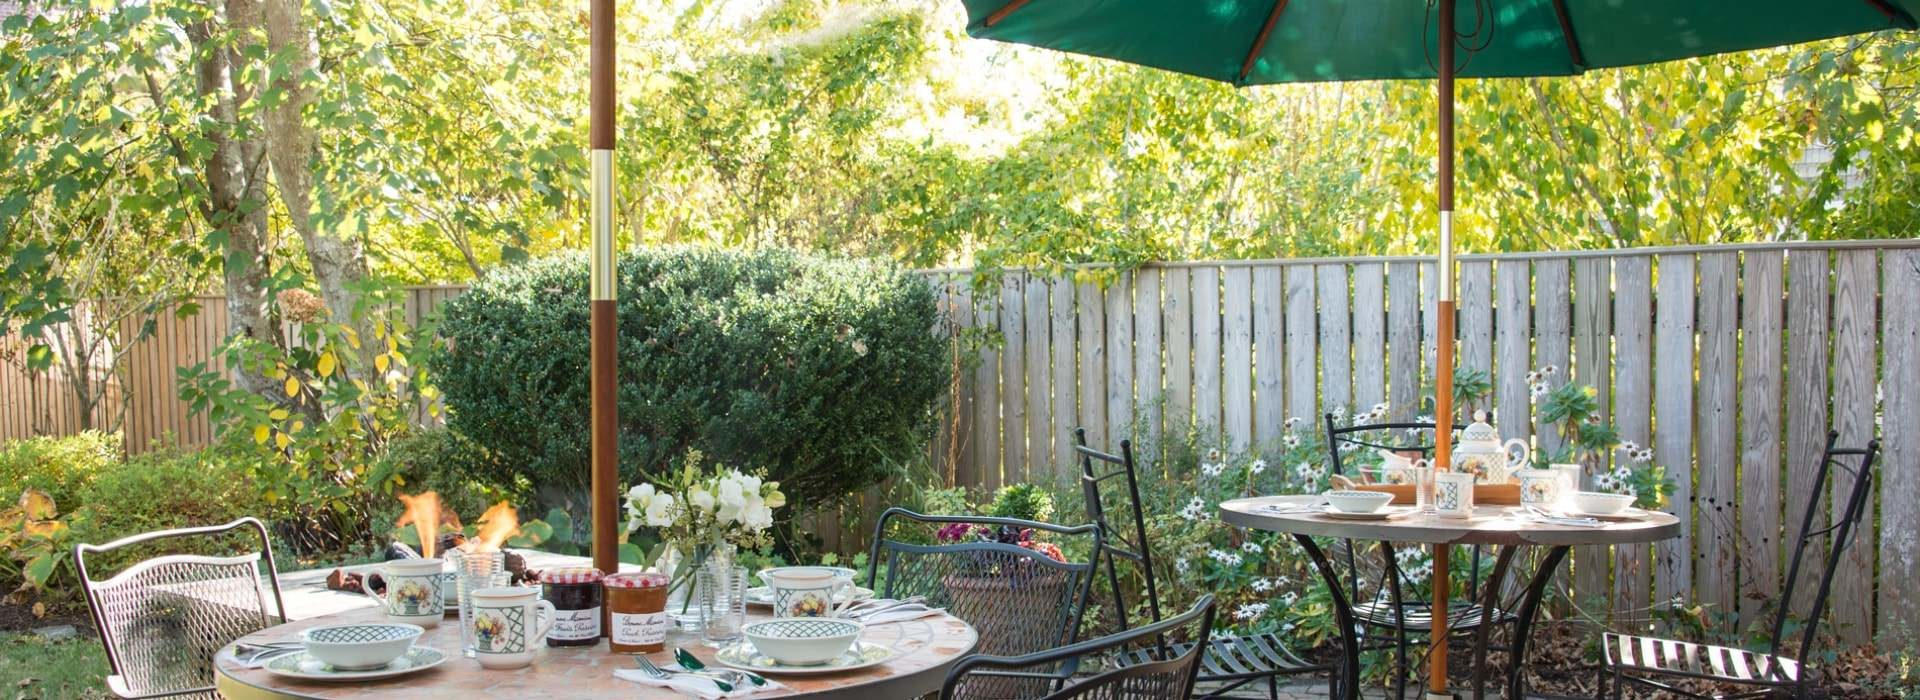 Two patio tables with opened umbrellas and place settings on a patio with green shrubs, trees, and flowers